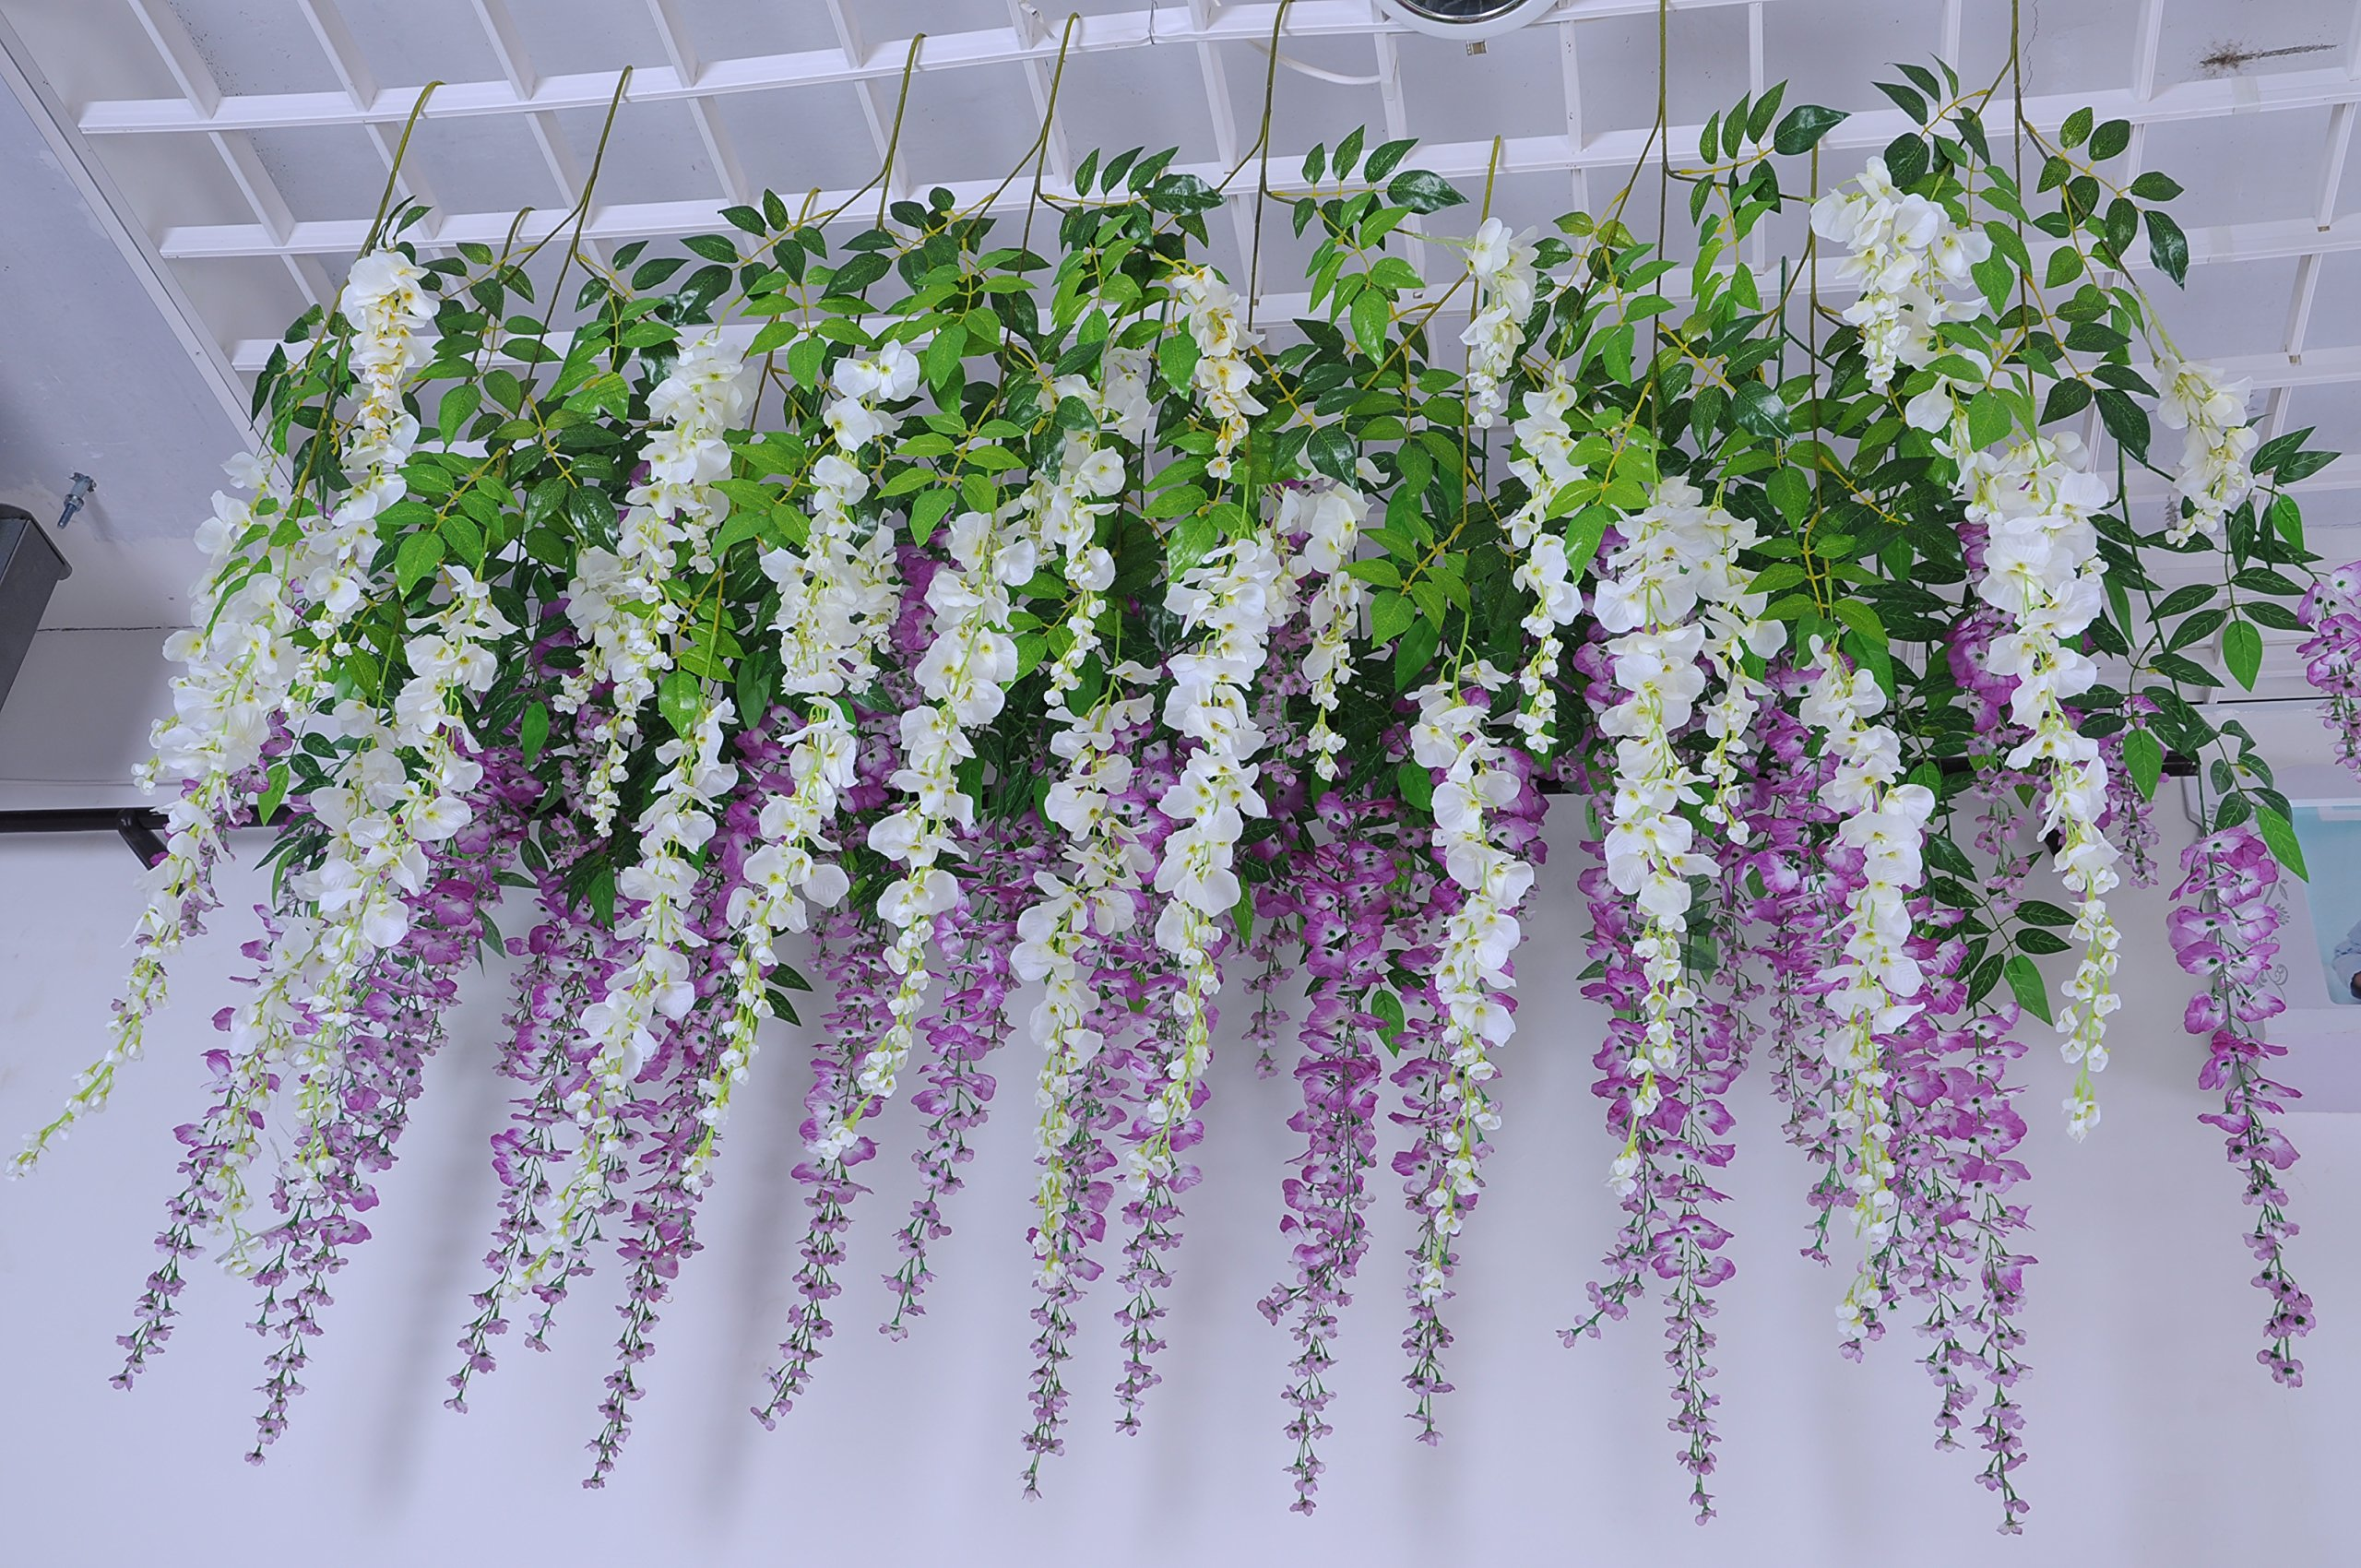 Coobl 36 ft realistic artificial fake wisteria vine ratta silk coobl 36 ft realistic artificial fake wisteria vine ratta silk flowers for garden floral decoration diy living room hanging plant vine home party wedding mightylinksfo